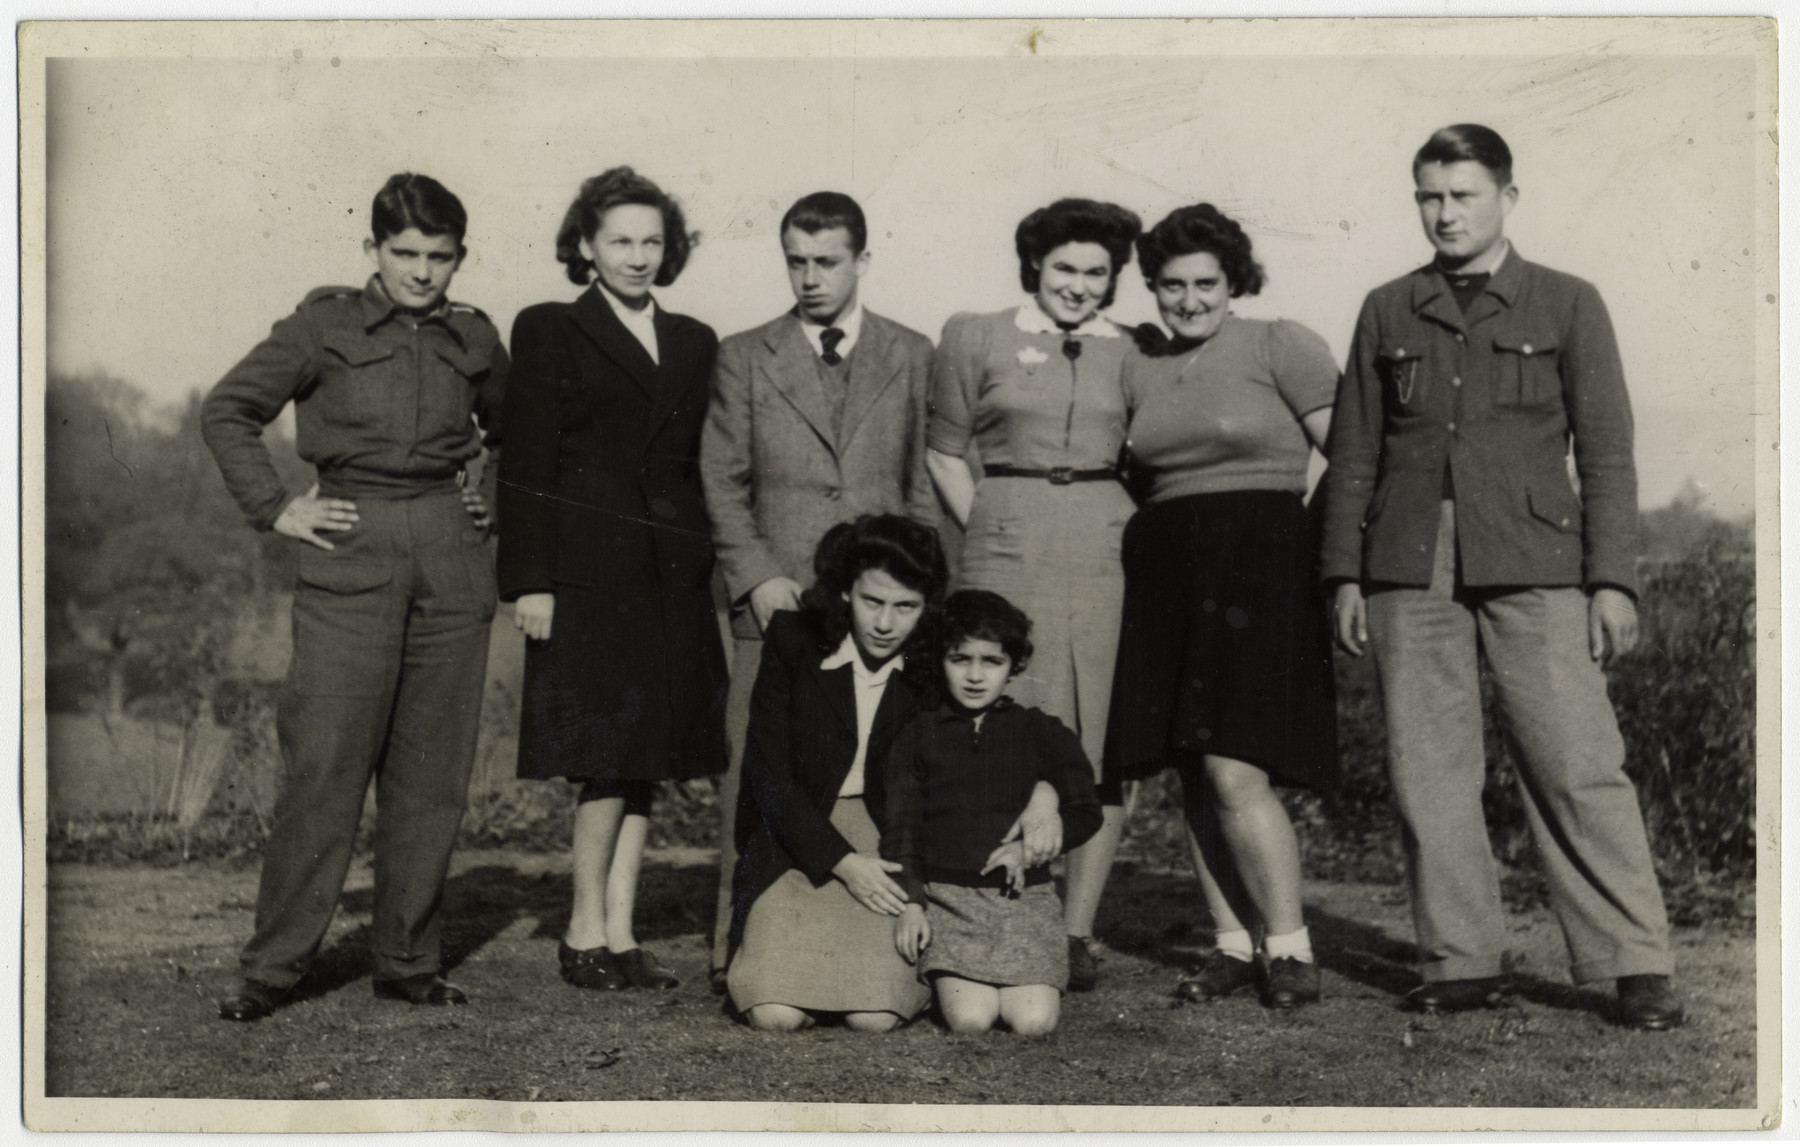 Child survivors pose in Windermere, England.  Kneeling in center is Tosca Sussman with a little girl Judith.